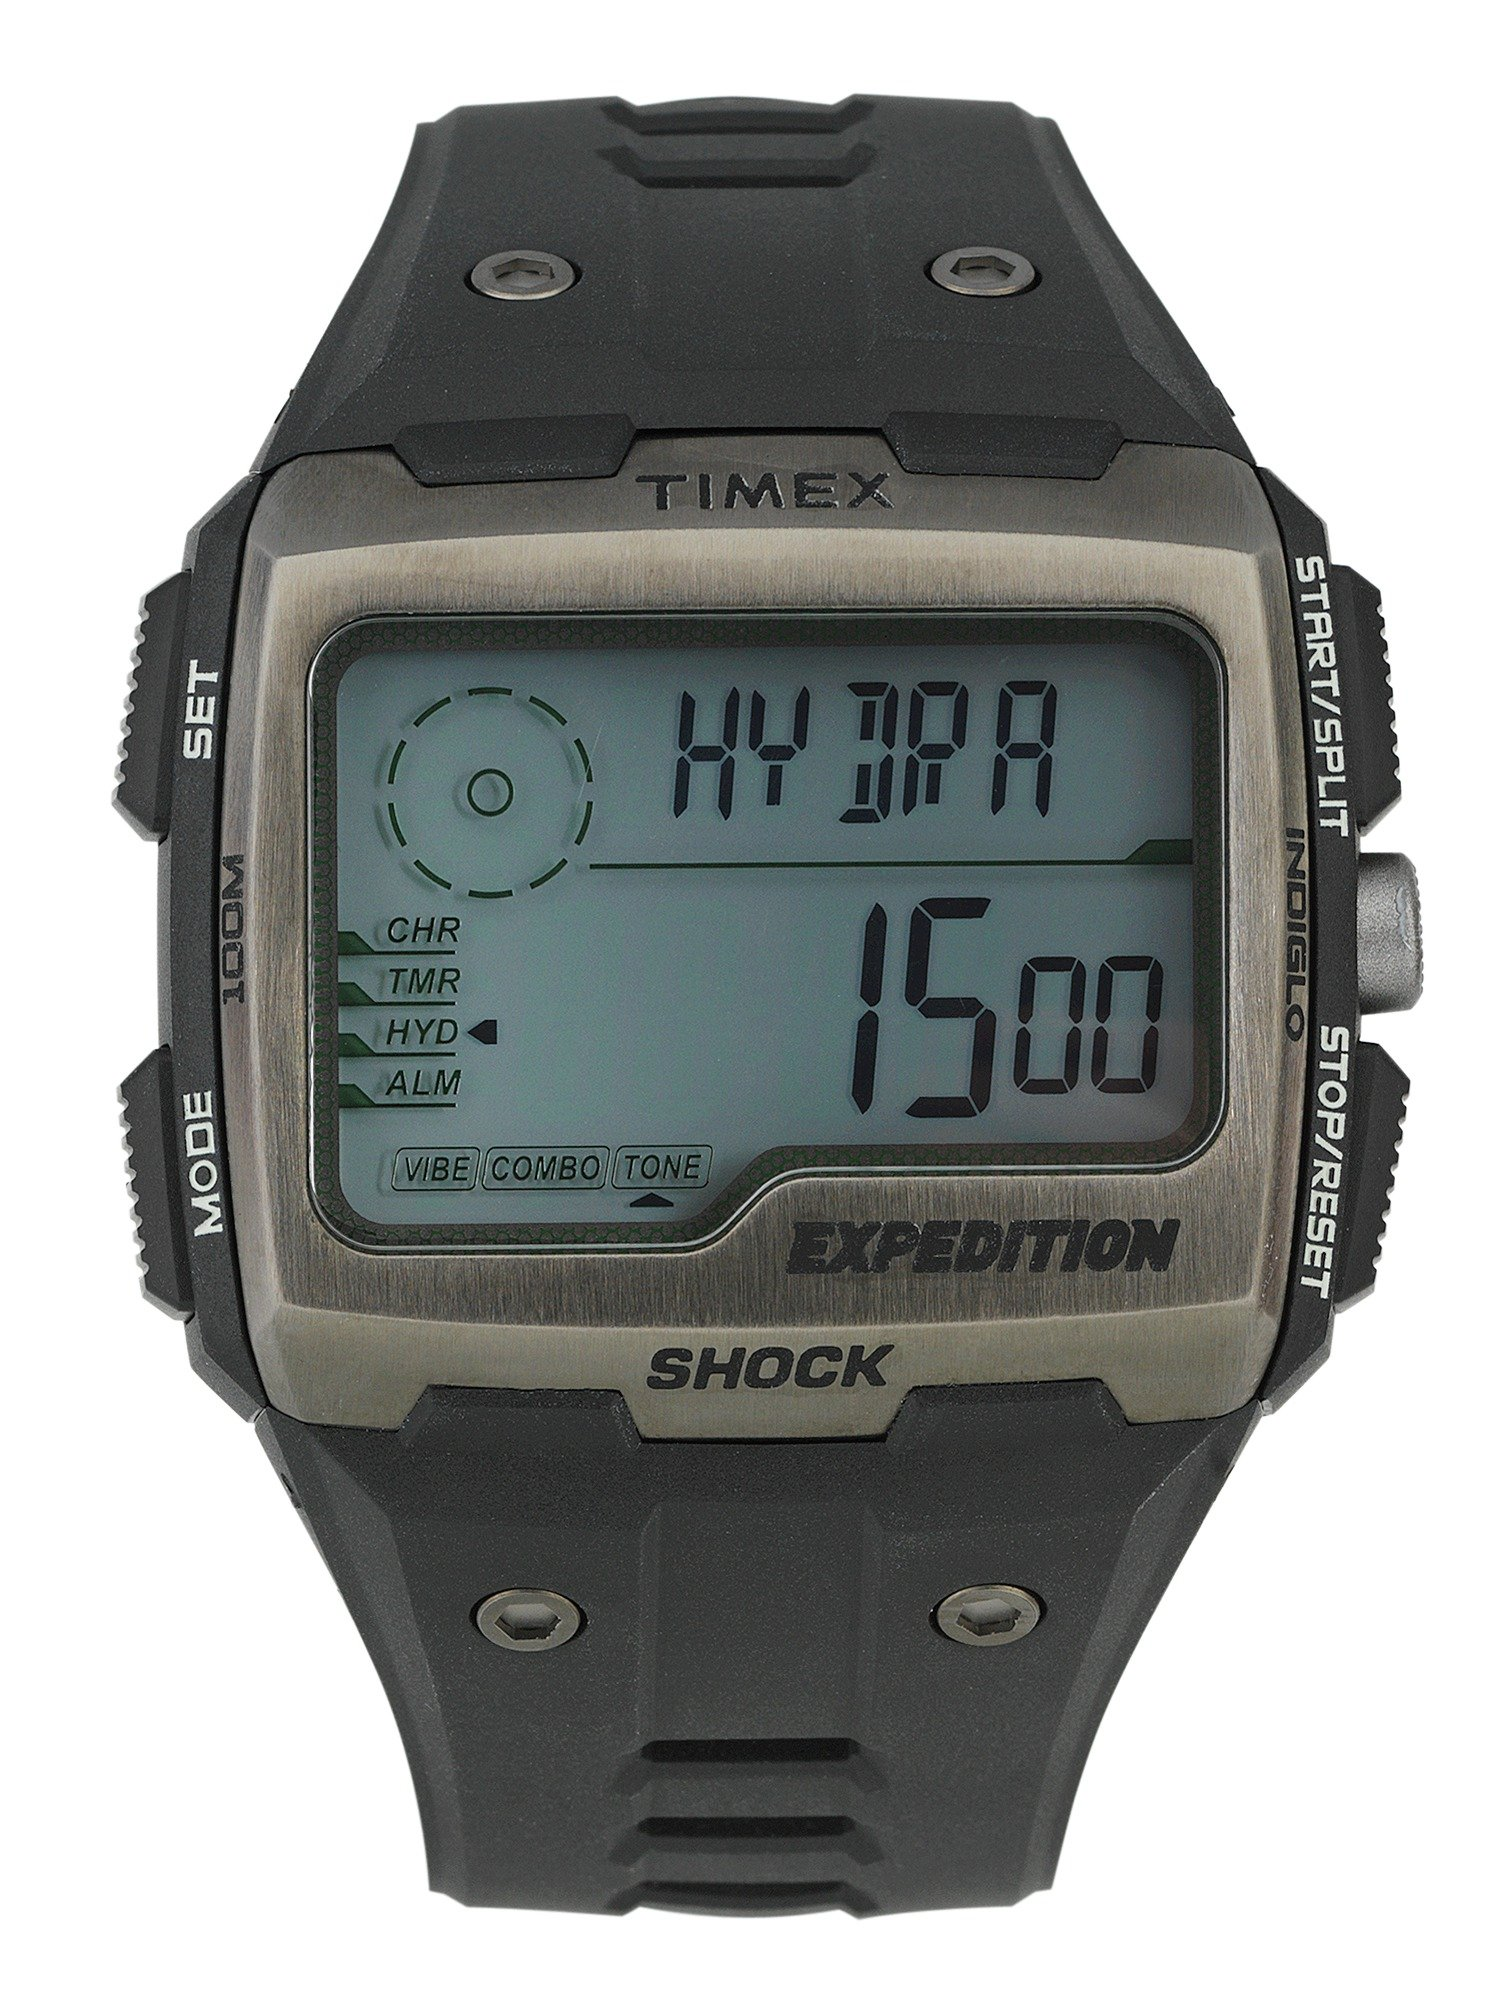 Timex review